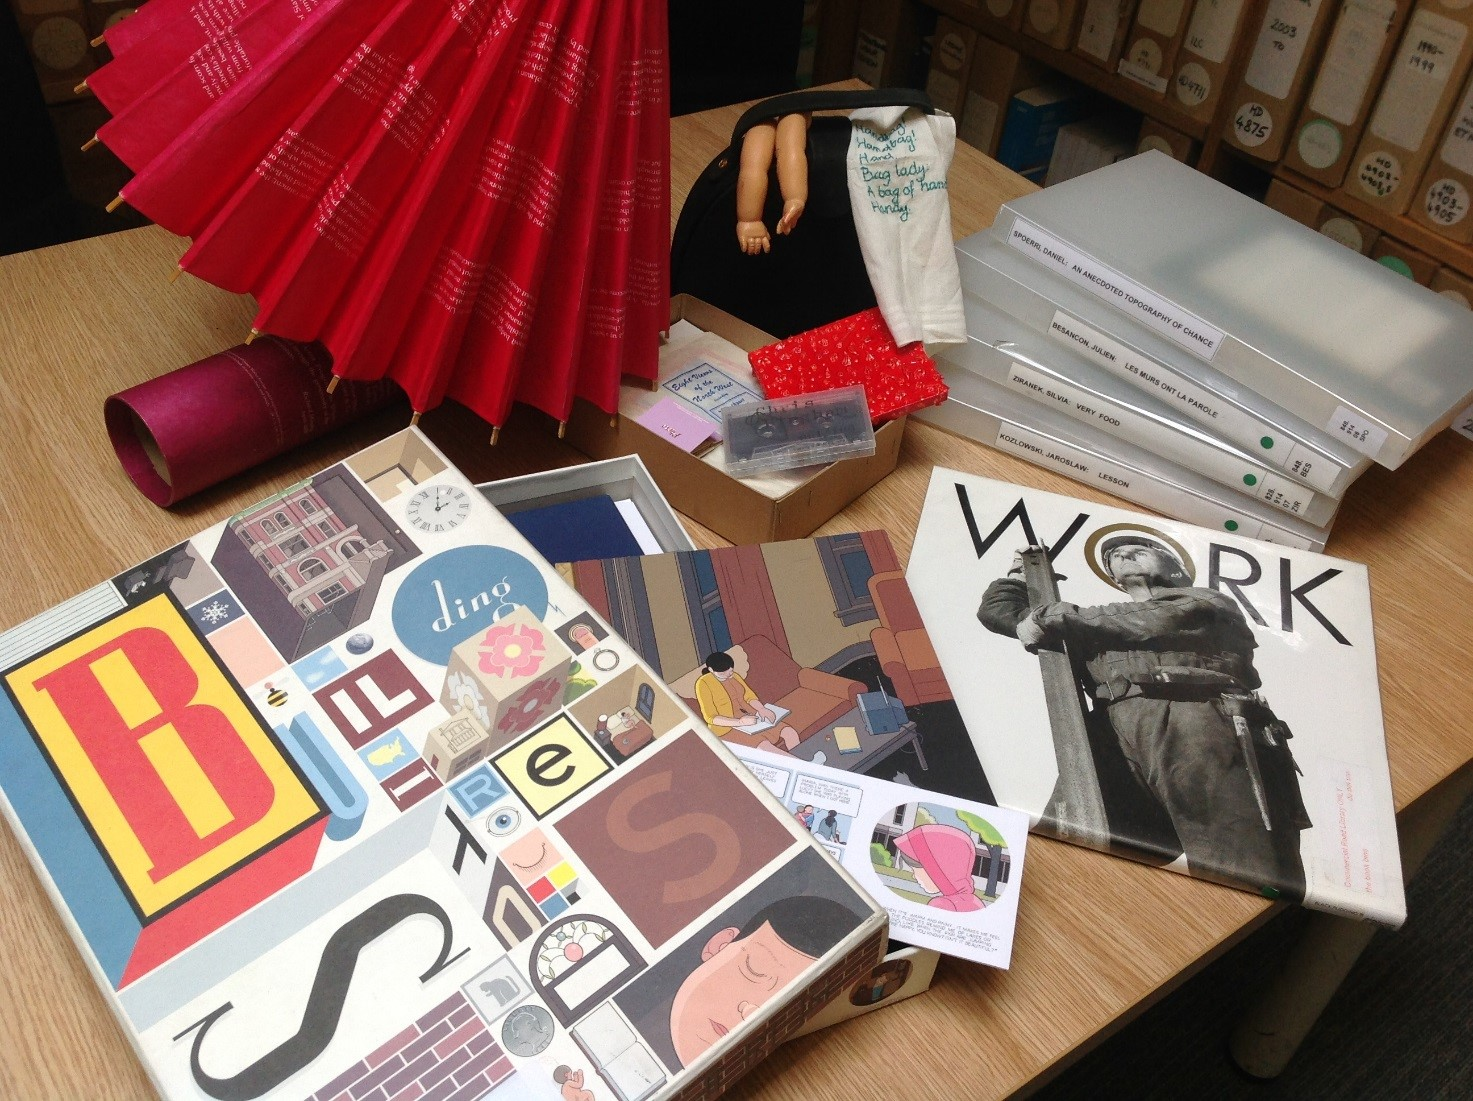 Photograph of samples from LMU's Artists' Books Collection